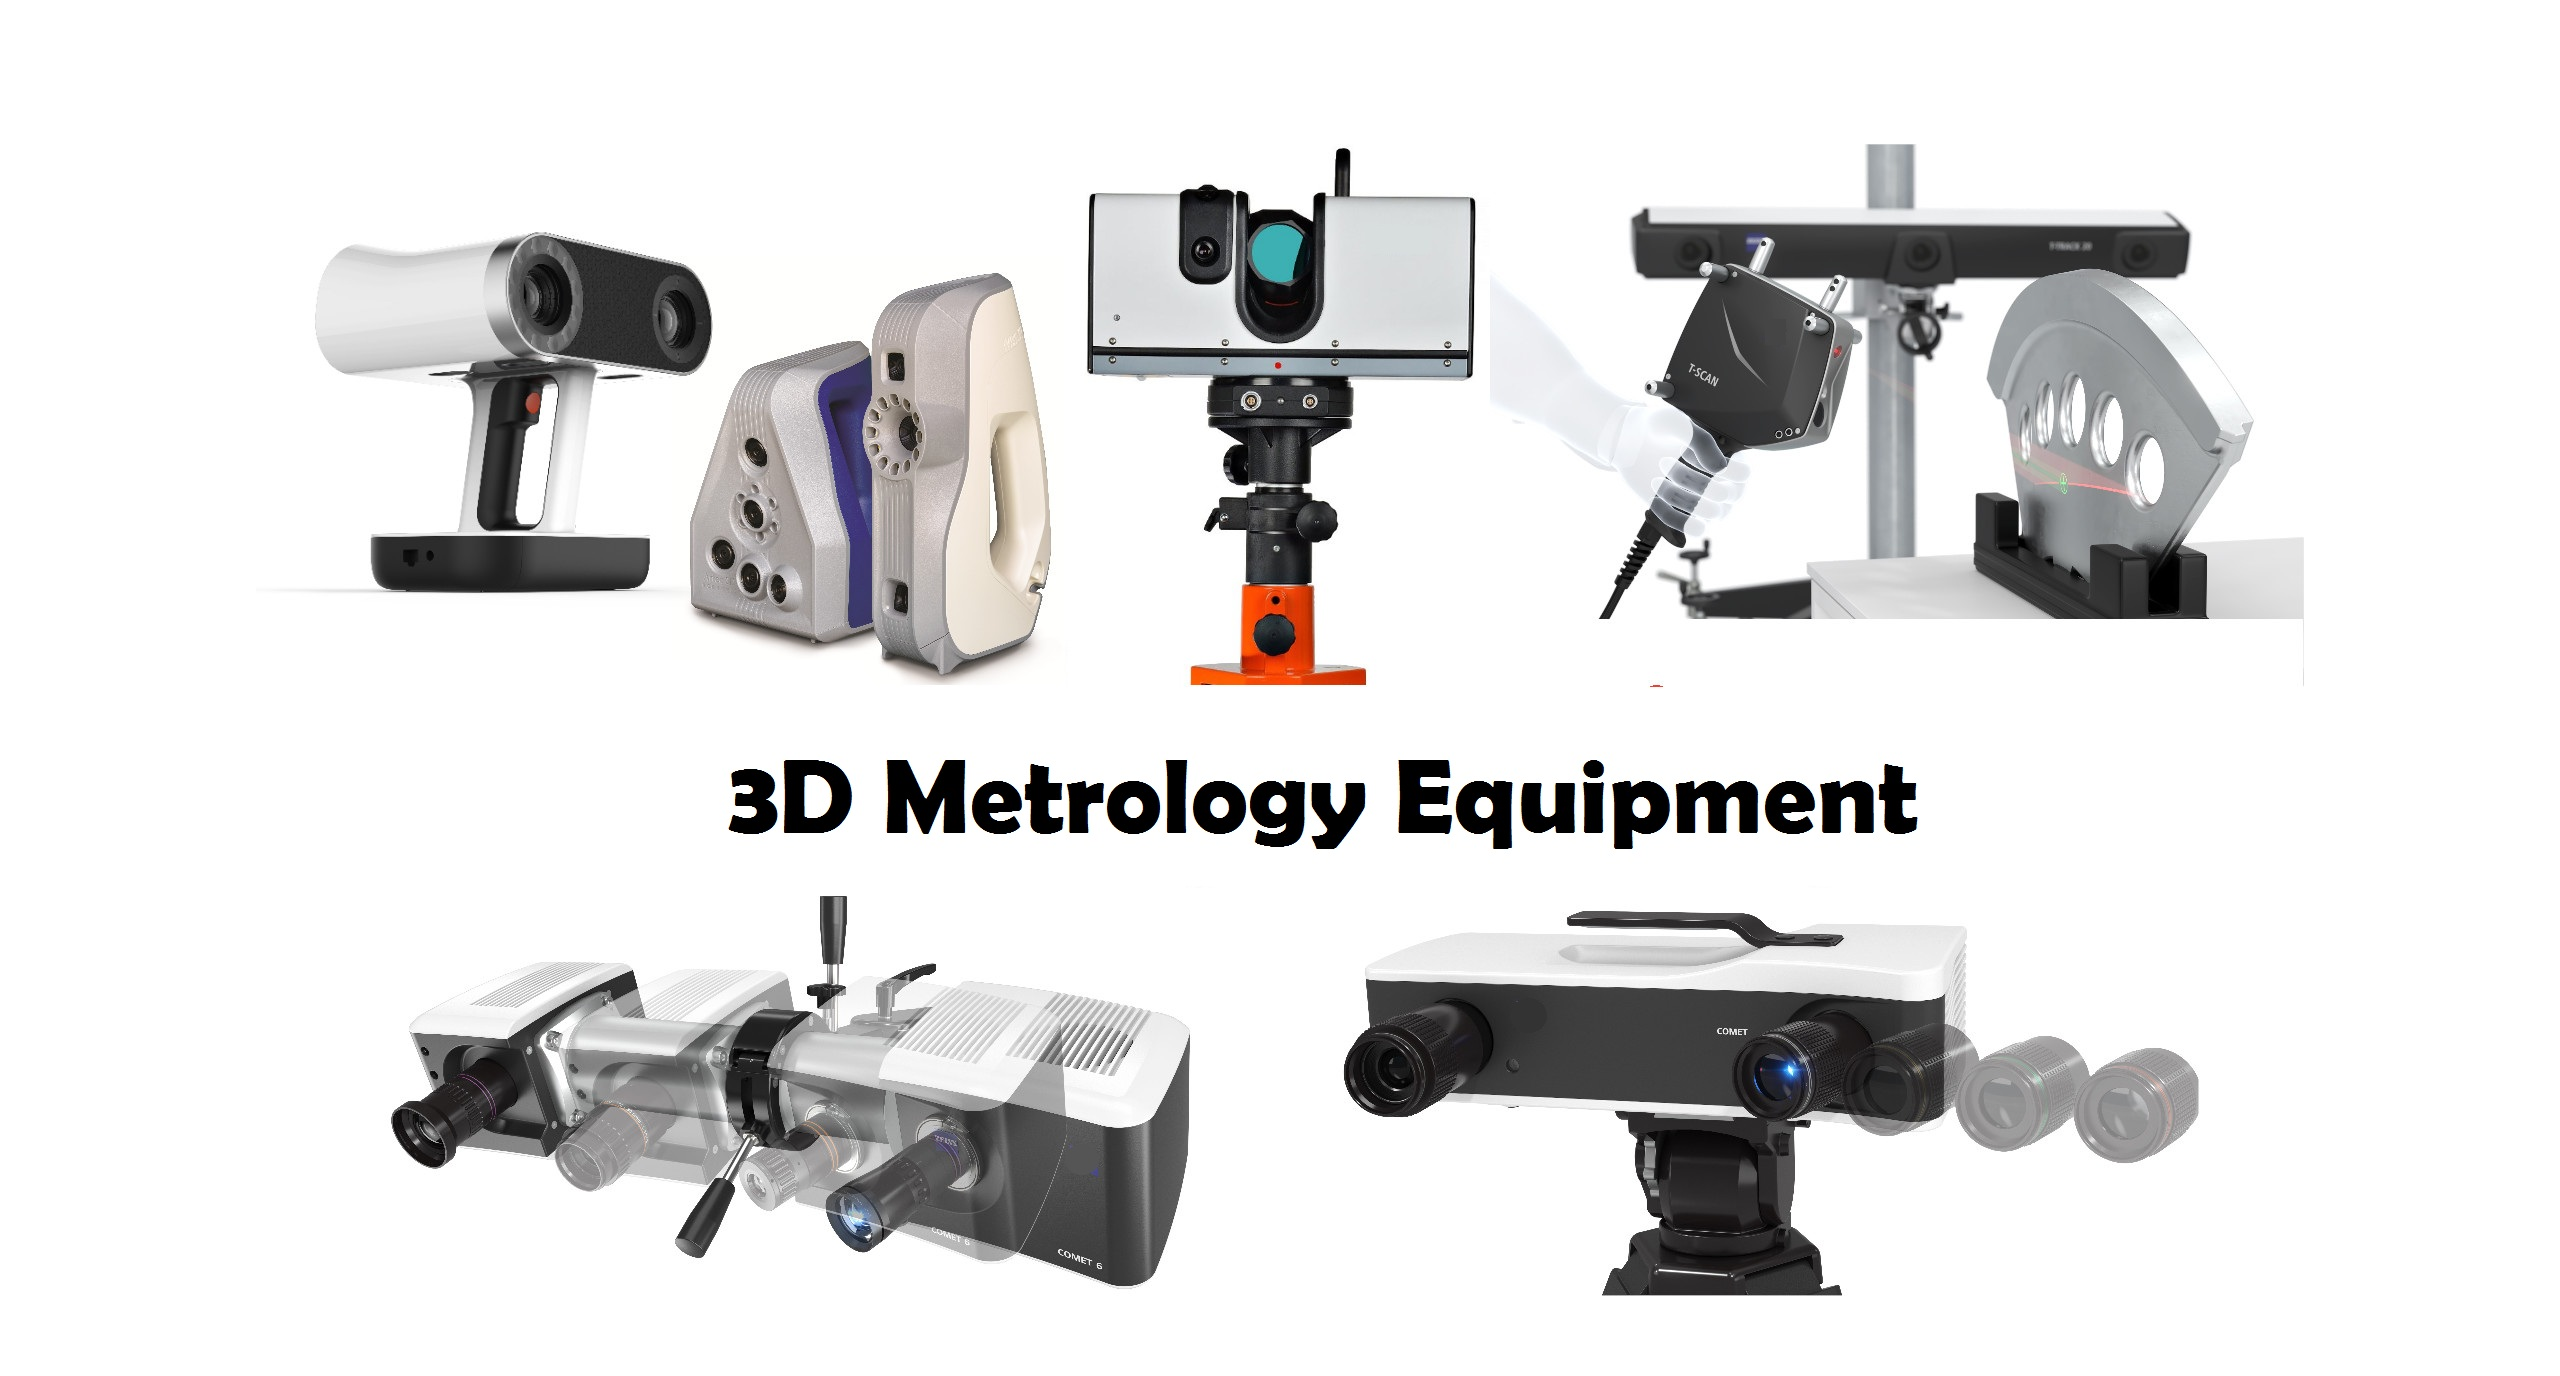 3D Metrology Market Size | Types | Top Players | Trends and Forecast to 2024